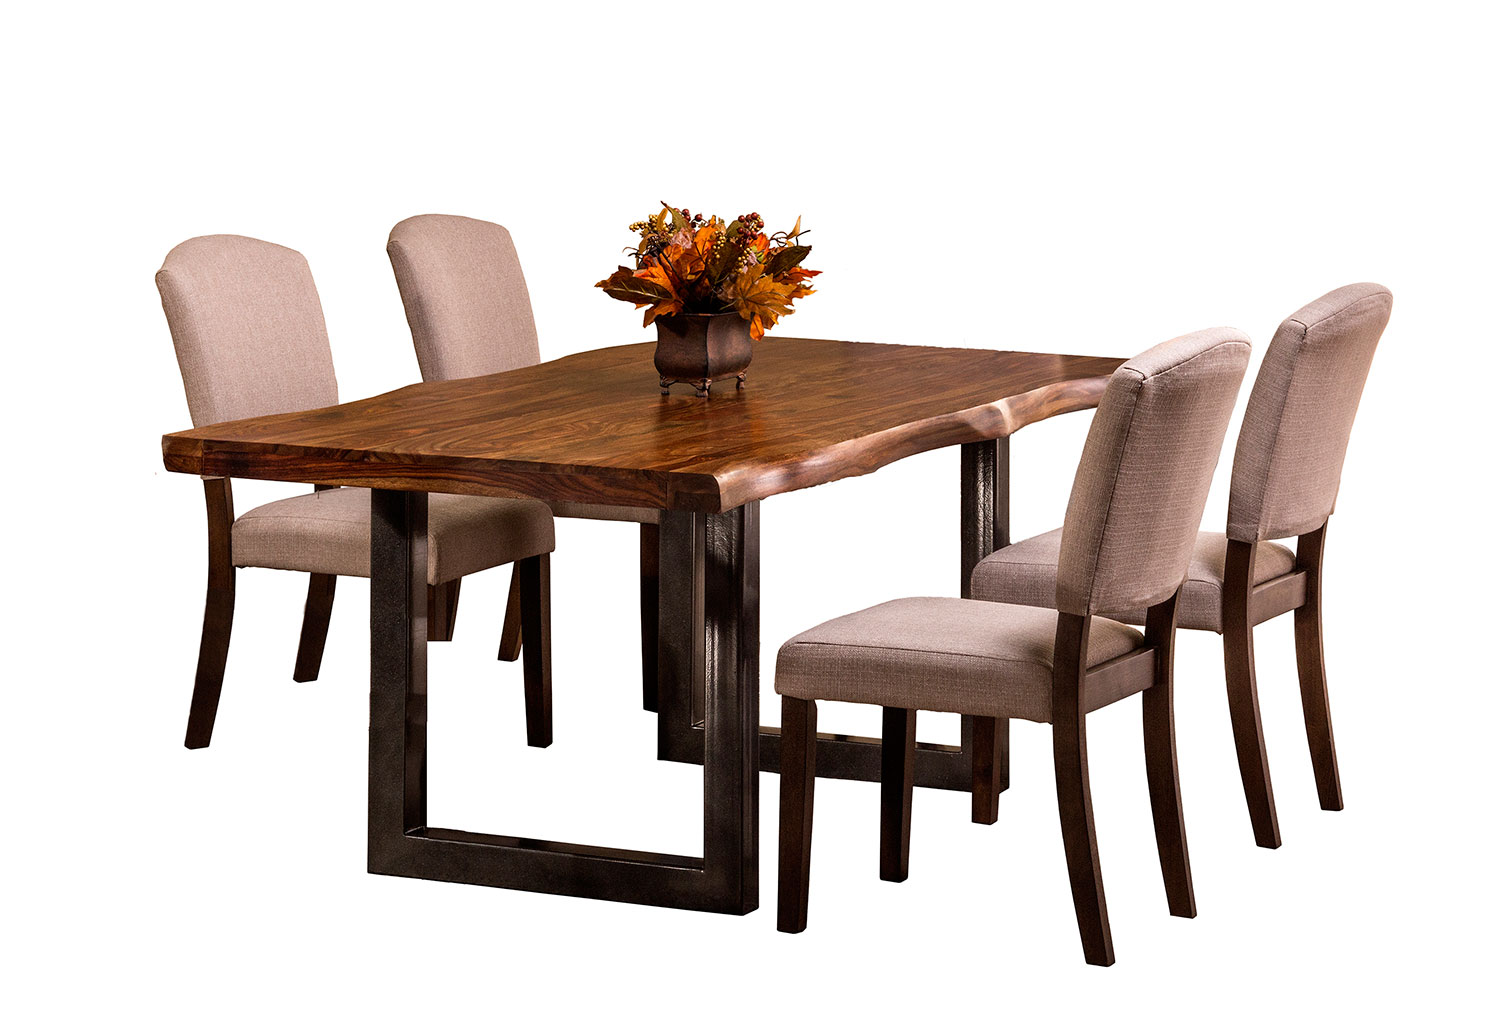 Hillsdale Emerson 5 Piece Rectangle Dining Set Natural